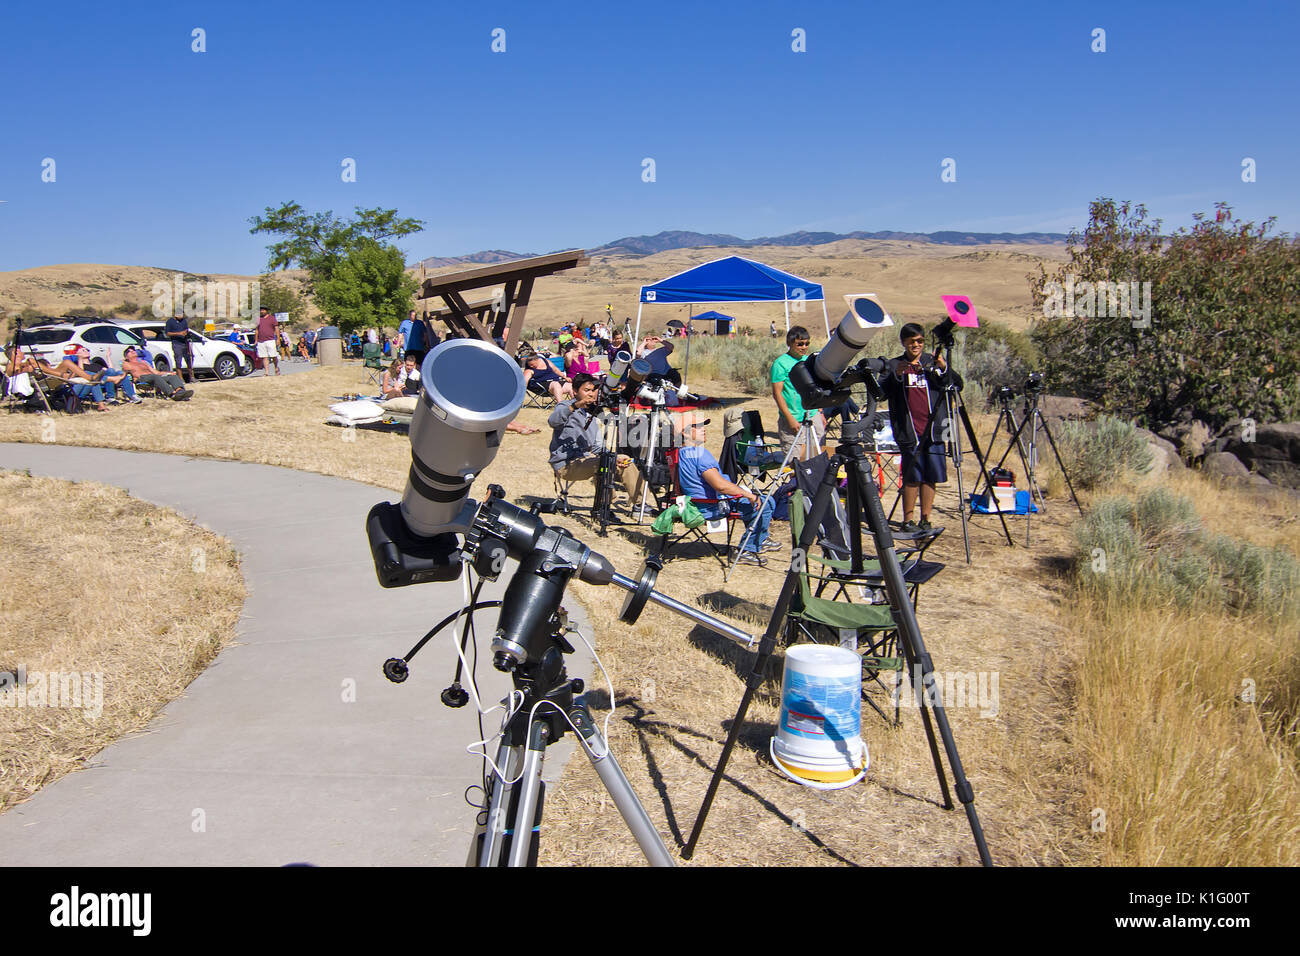 People viewing 2017 United States Solar Eclipse Stock Photo